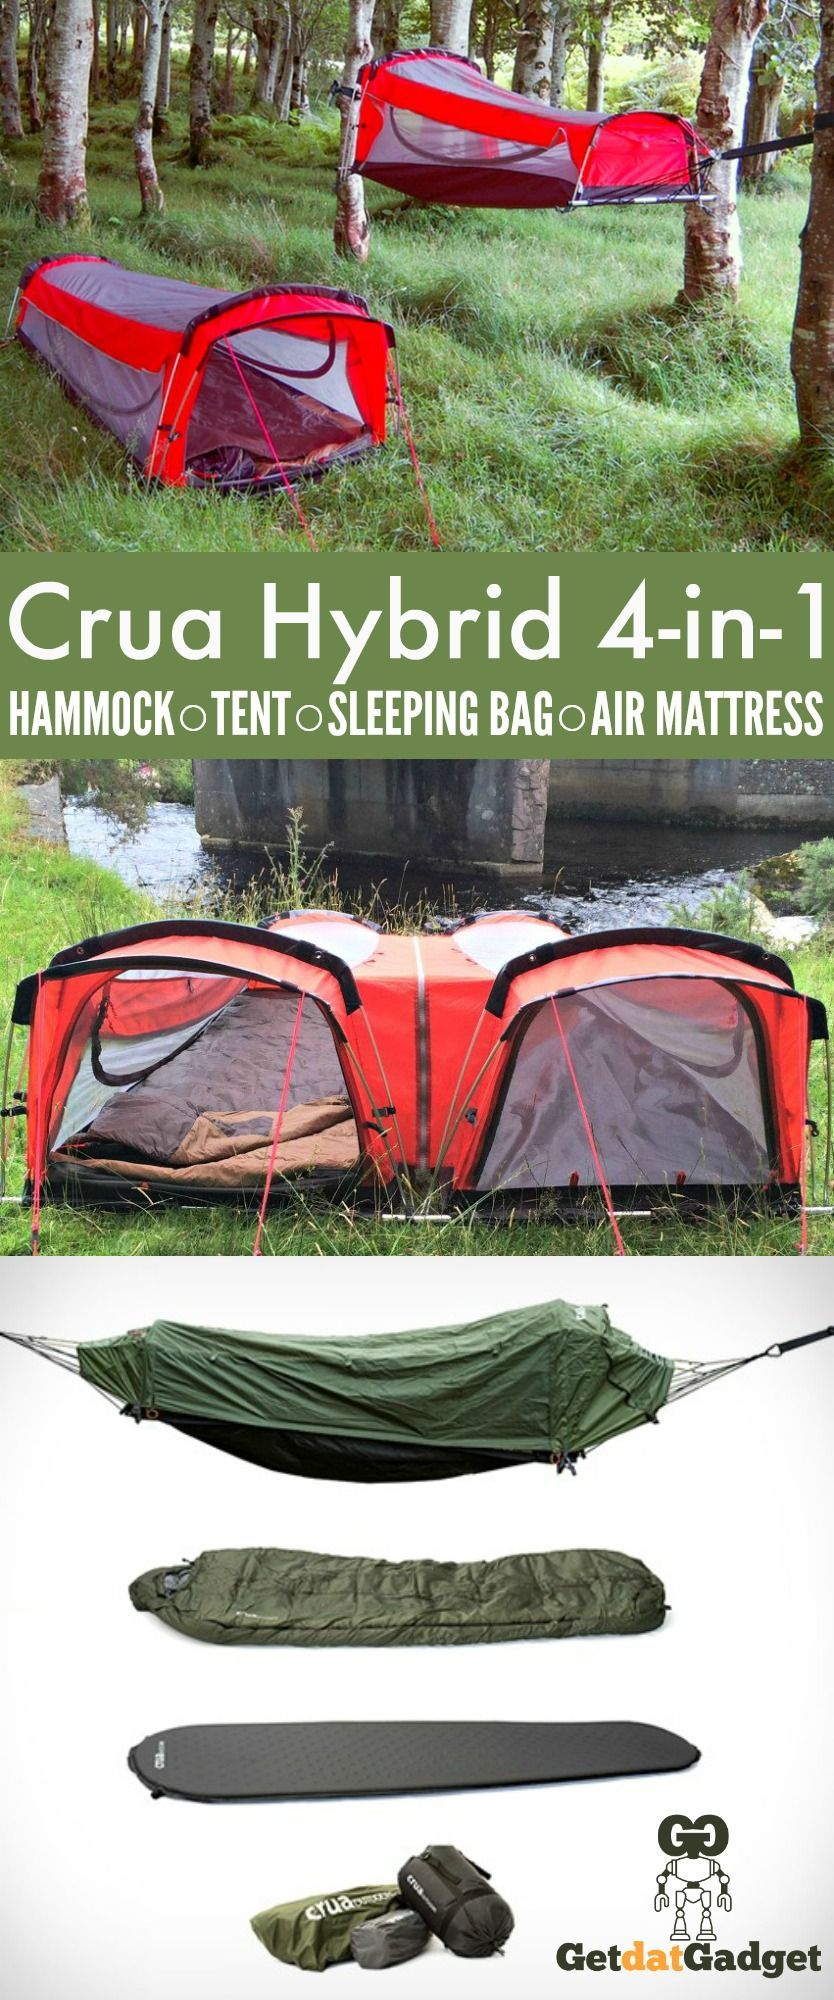 Crua Hybrid Is A One Person Camping Hammock That Converts To A Bivy Tent With Custom Fitted Self Inflating Air Mattress A Tent Sleeping Bags Camping Bivy Tent